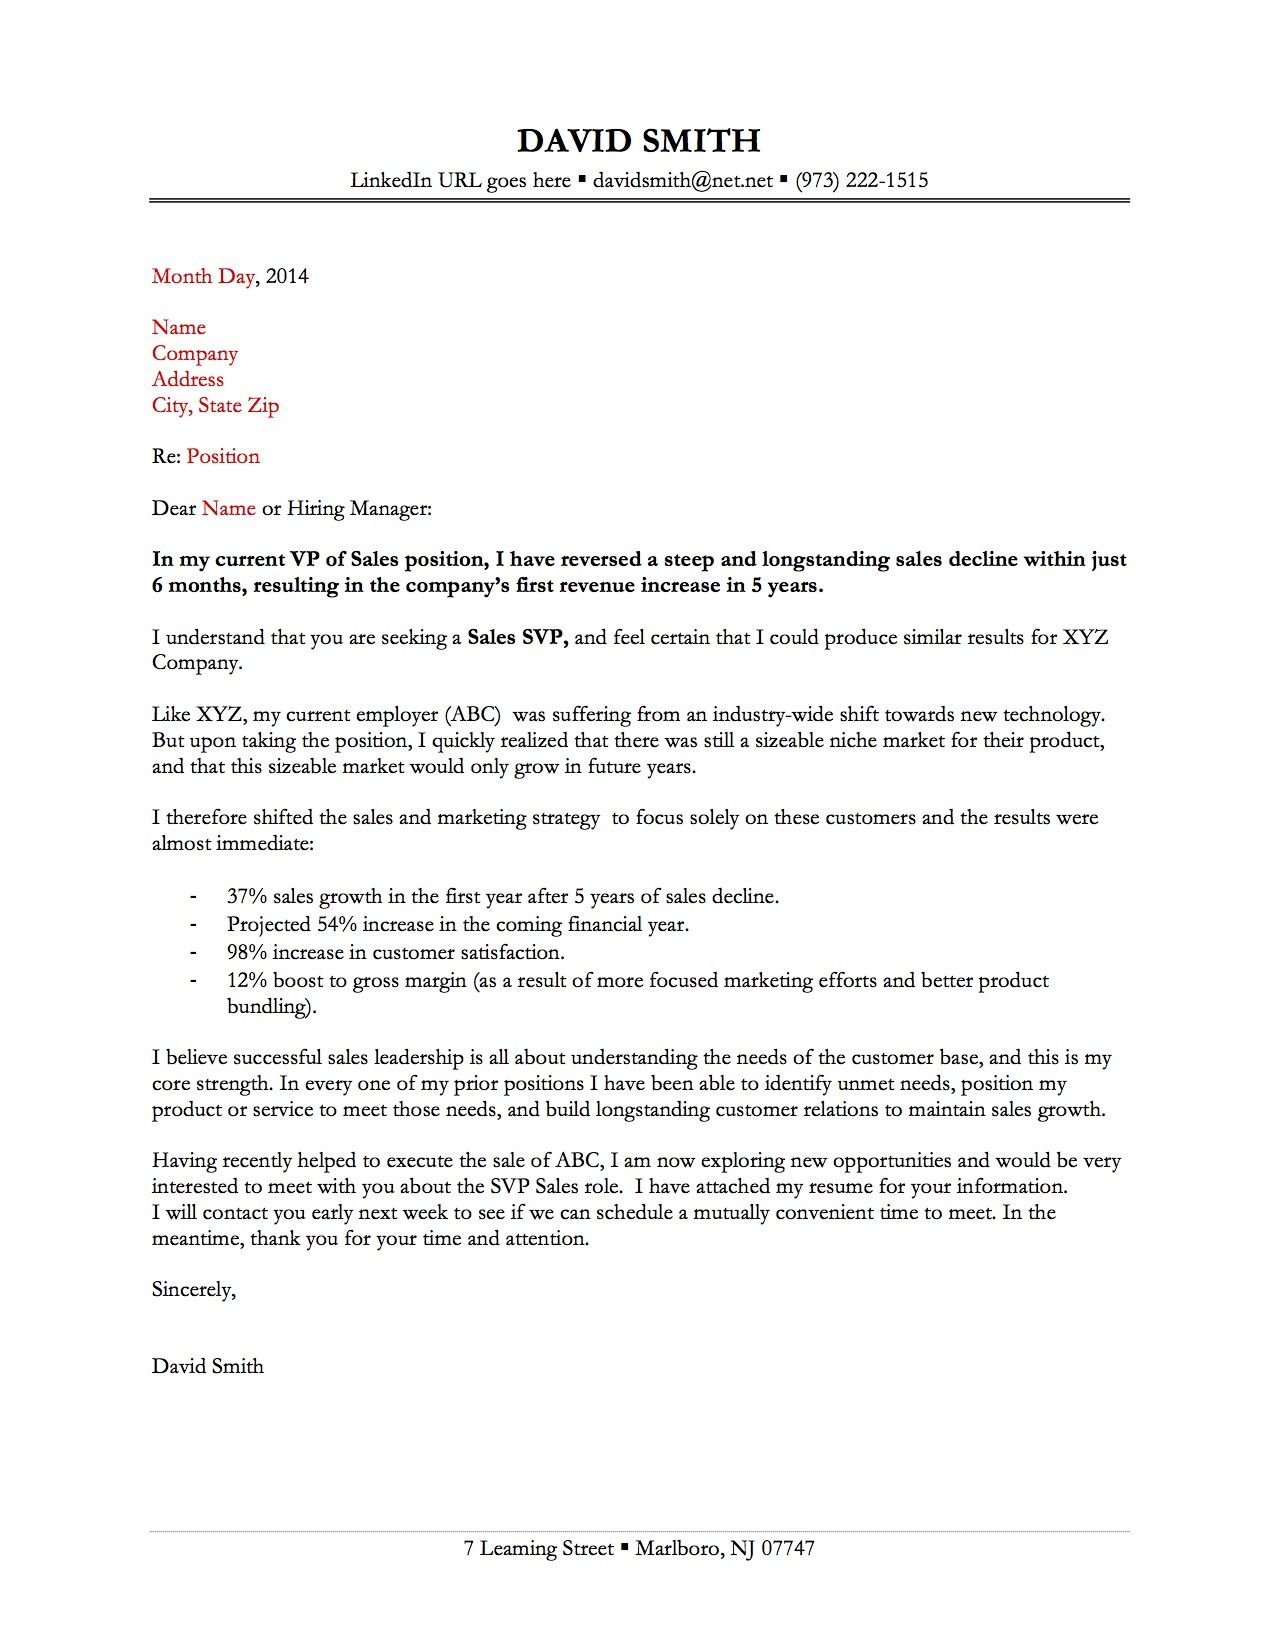 25+ Resume Cover Letter Samples Cover letter for resume